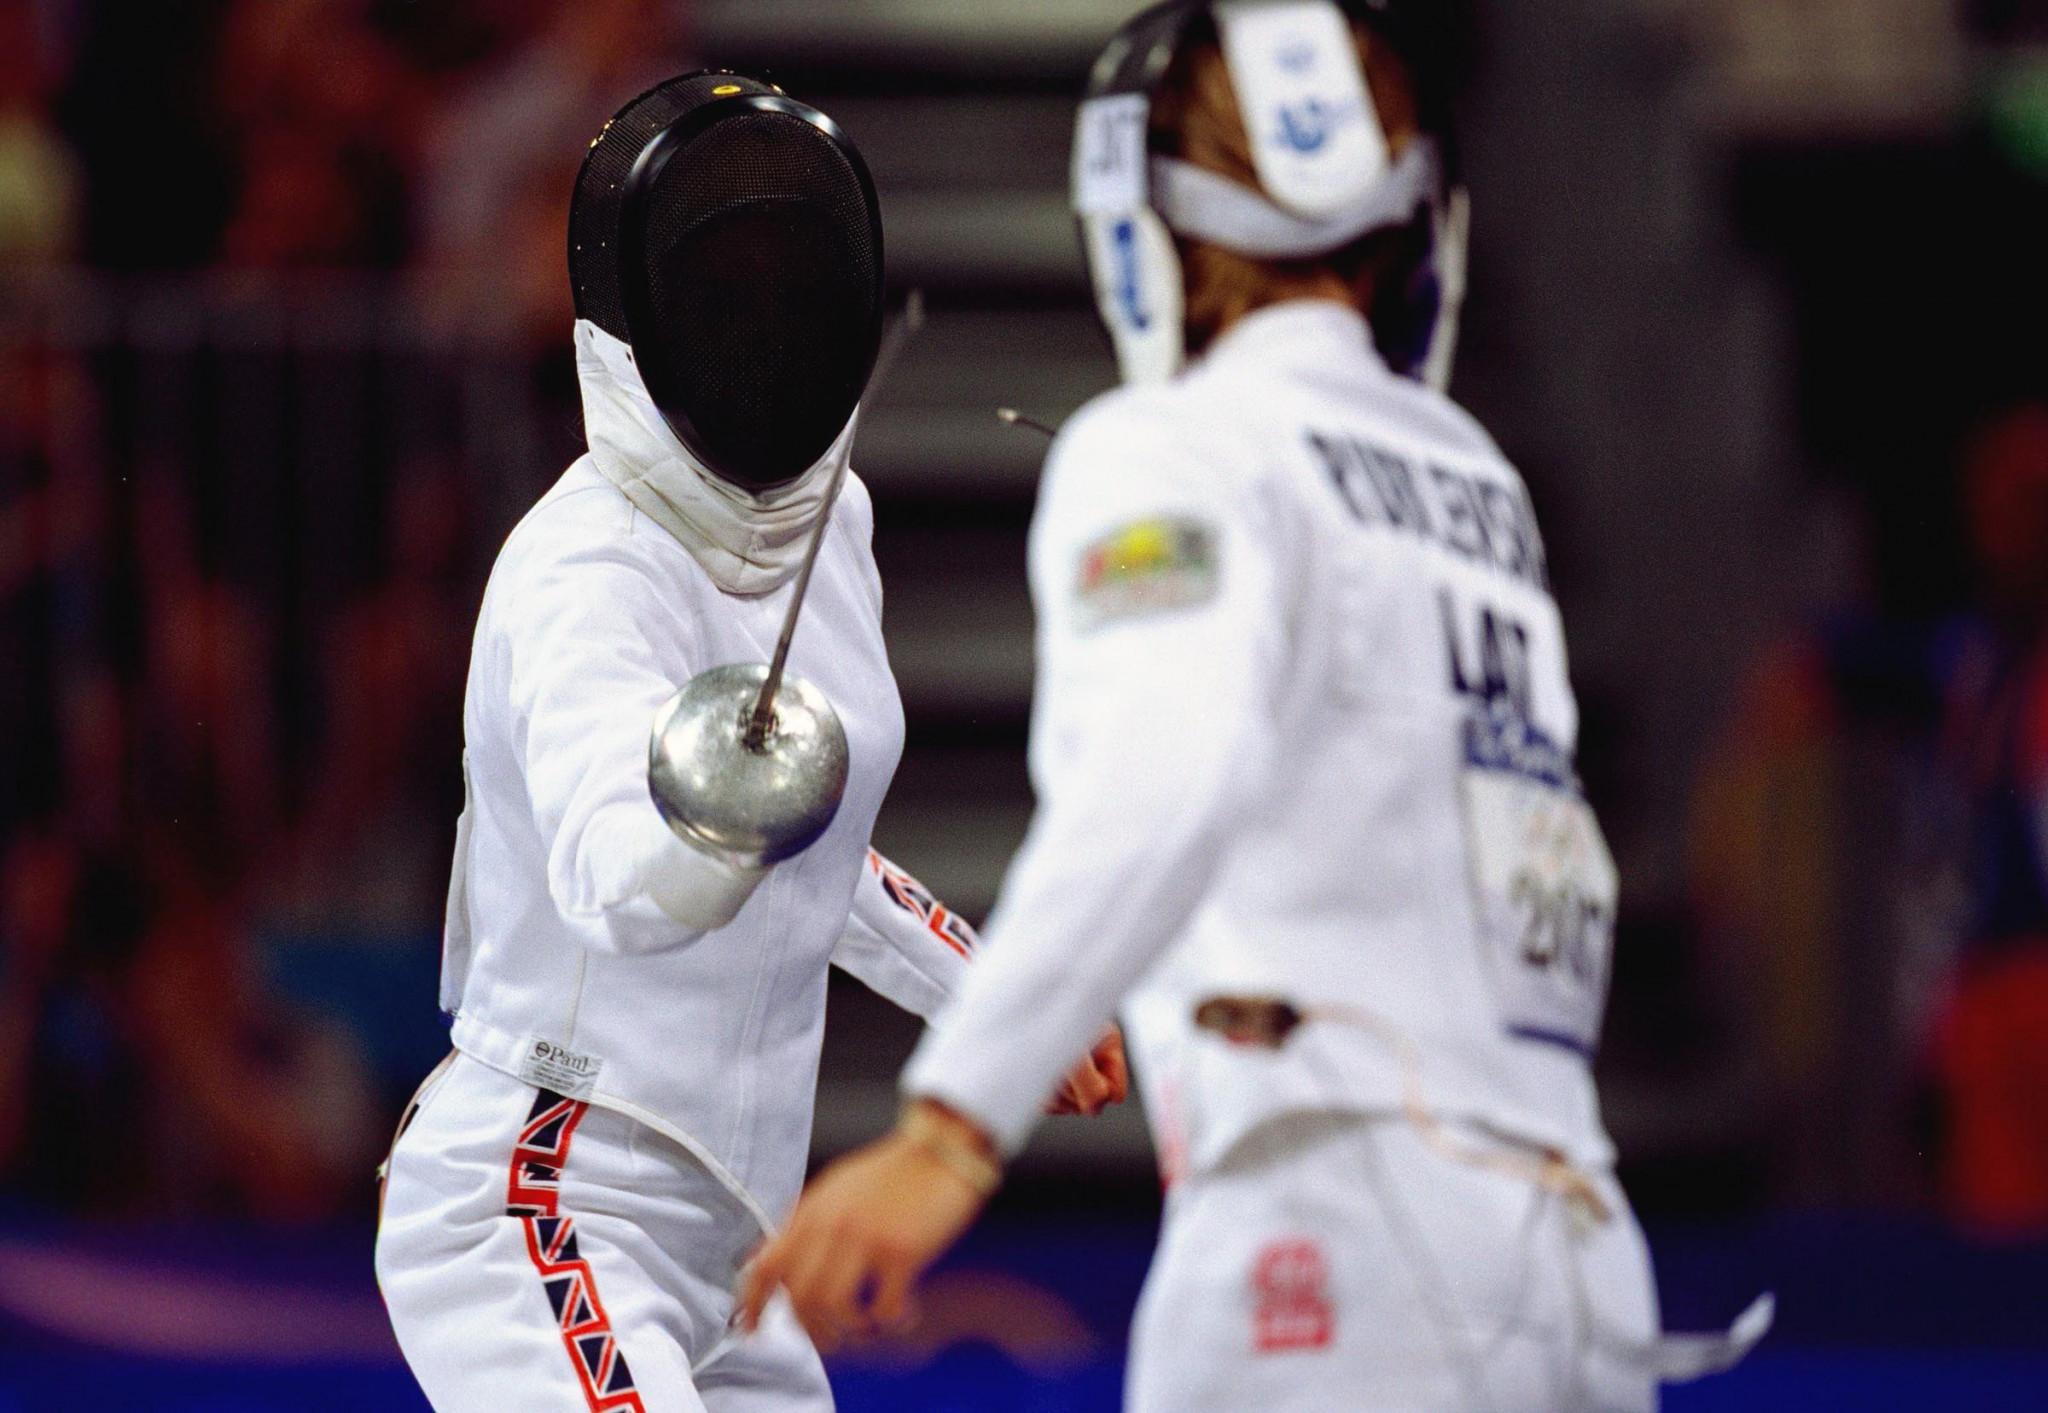 International Modern Pentathlon Union cancels 2020 Masters World Championships